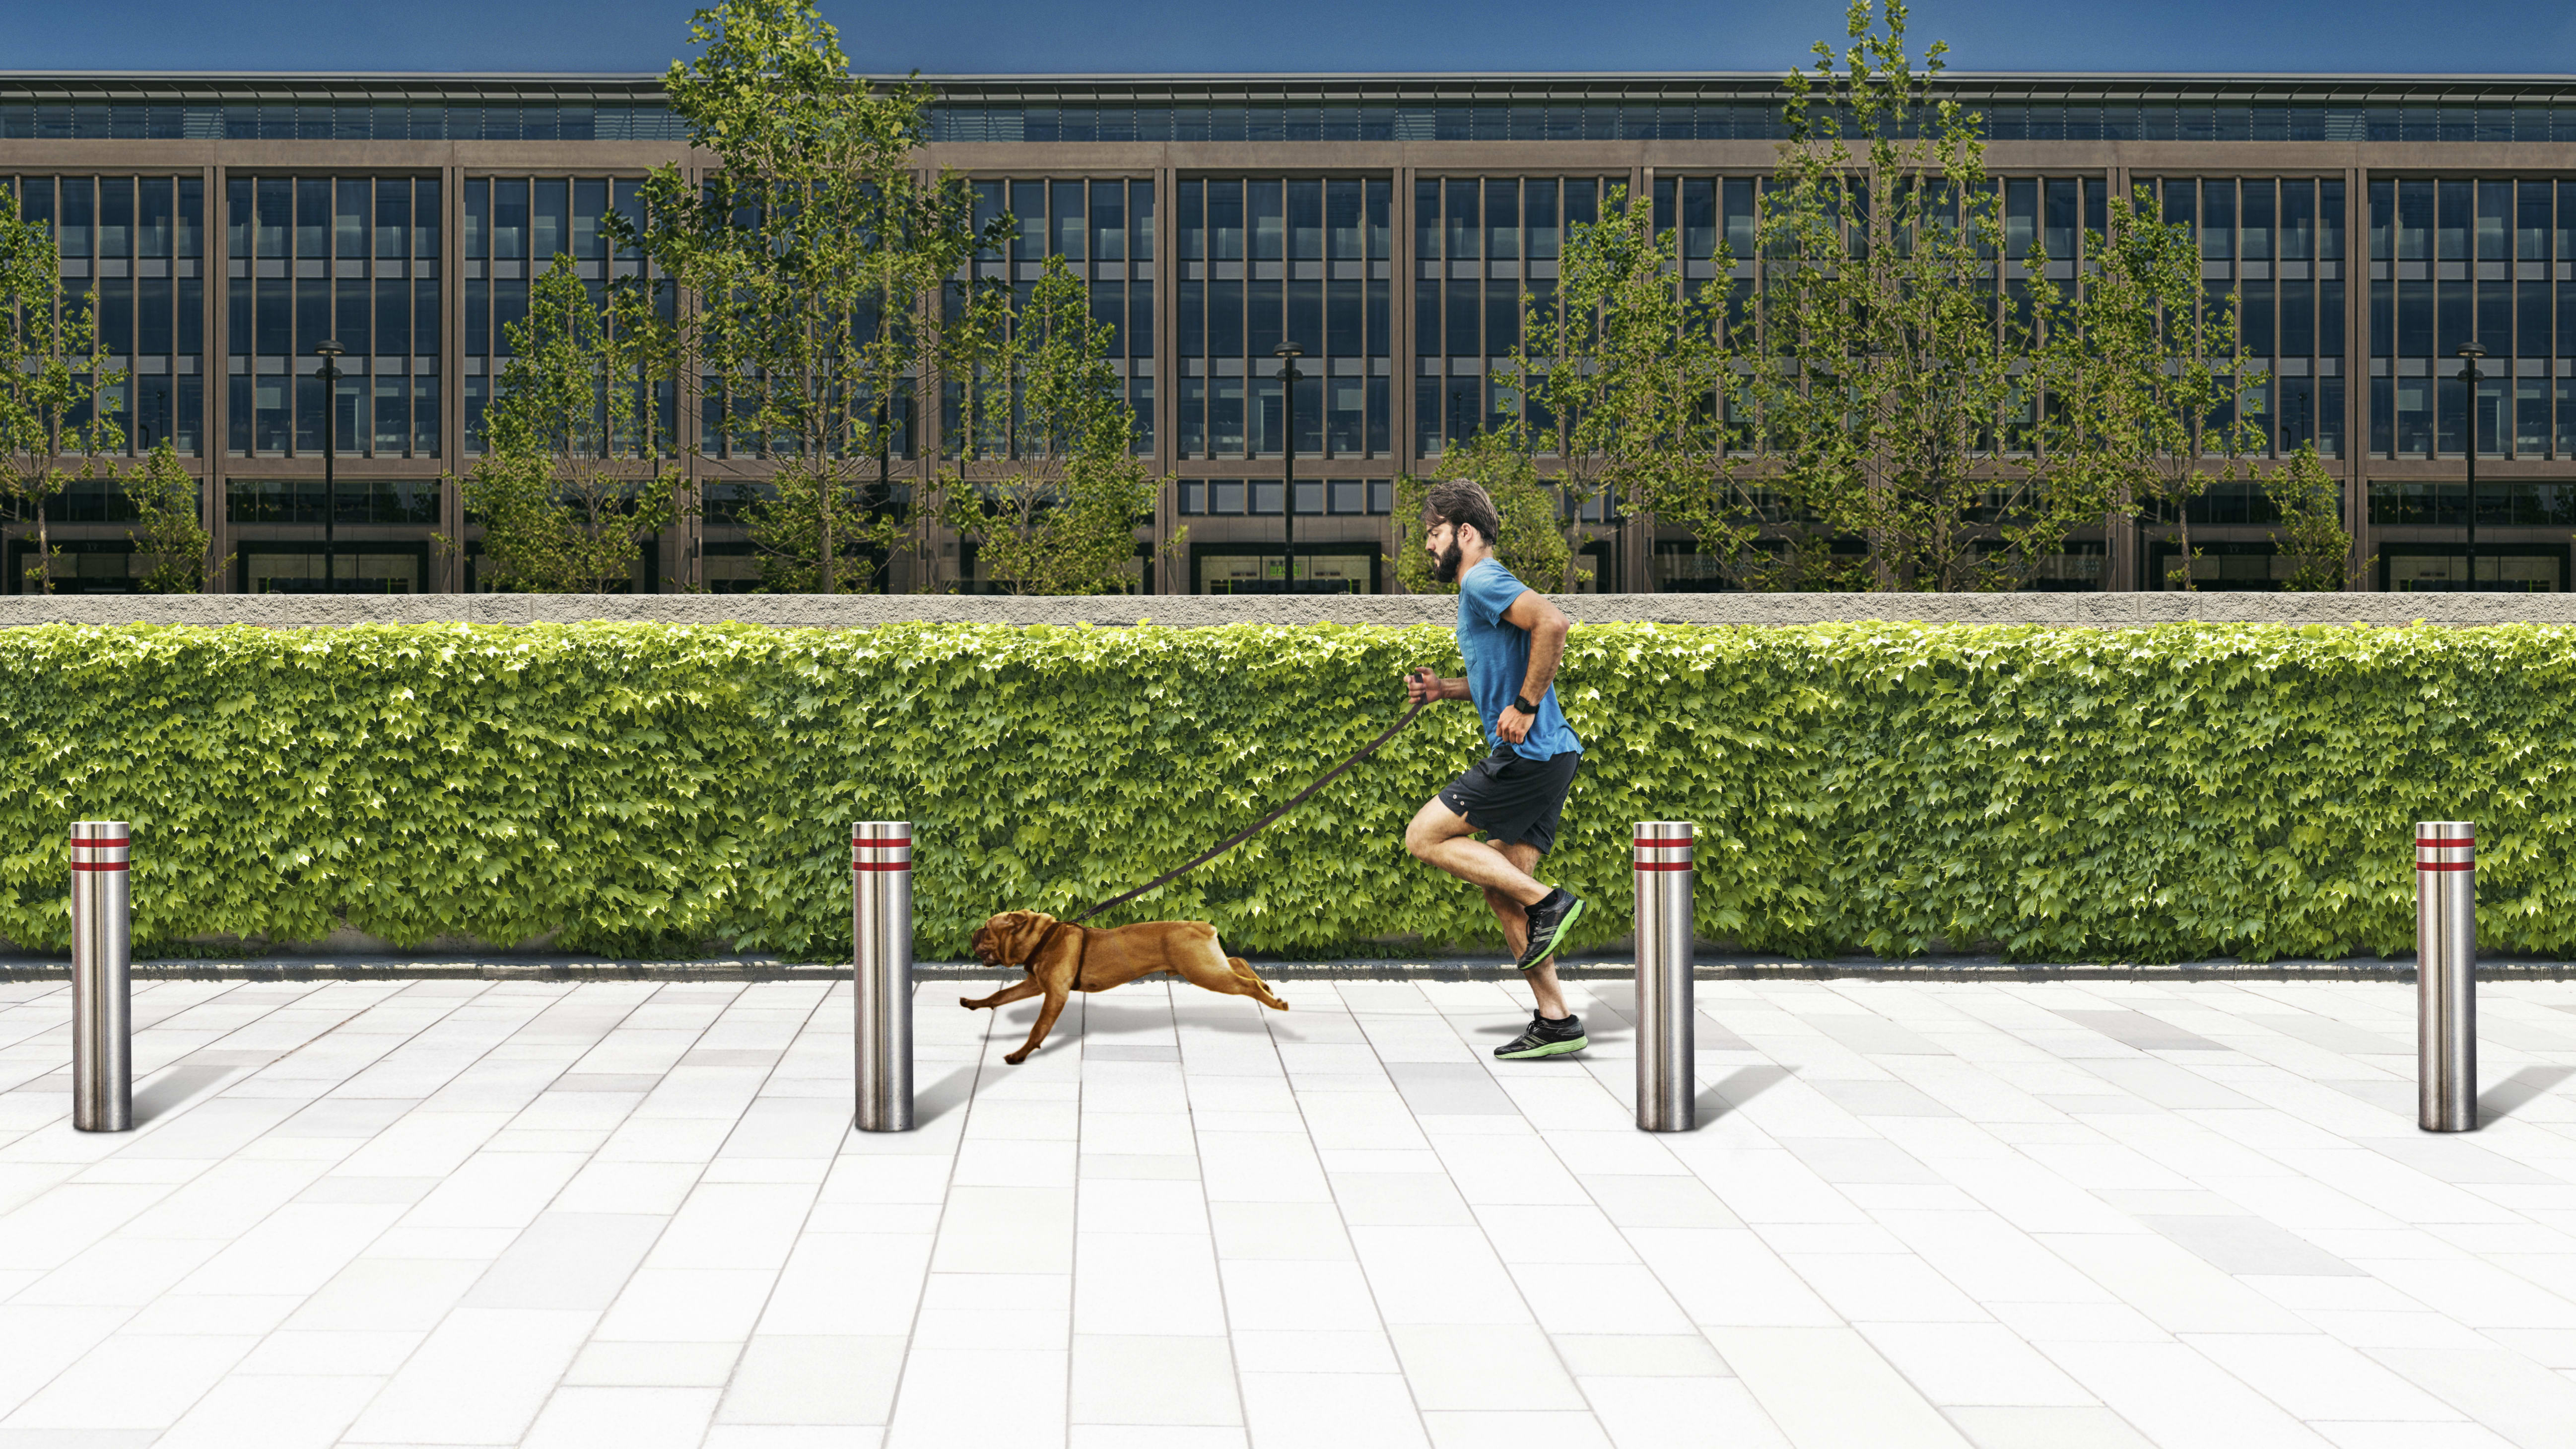 bollards on a pavement with a man running with a dog